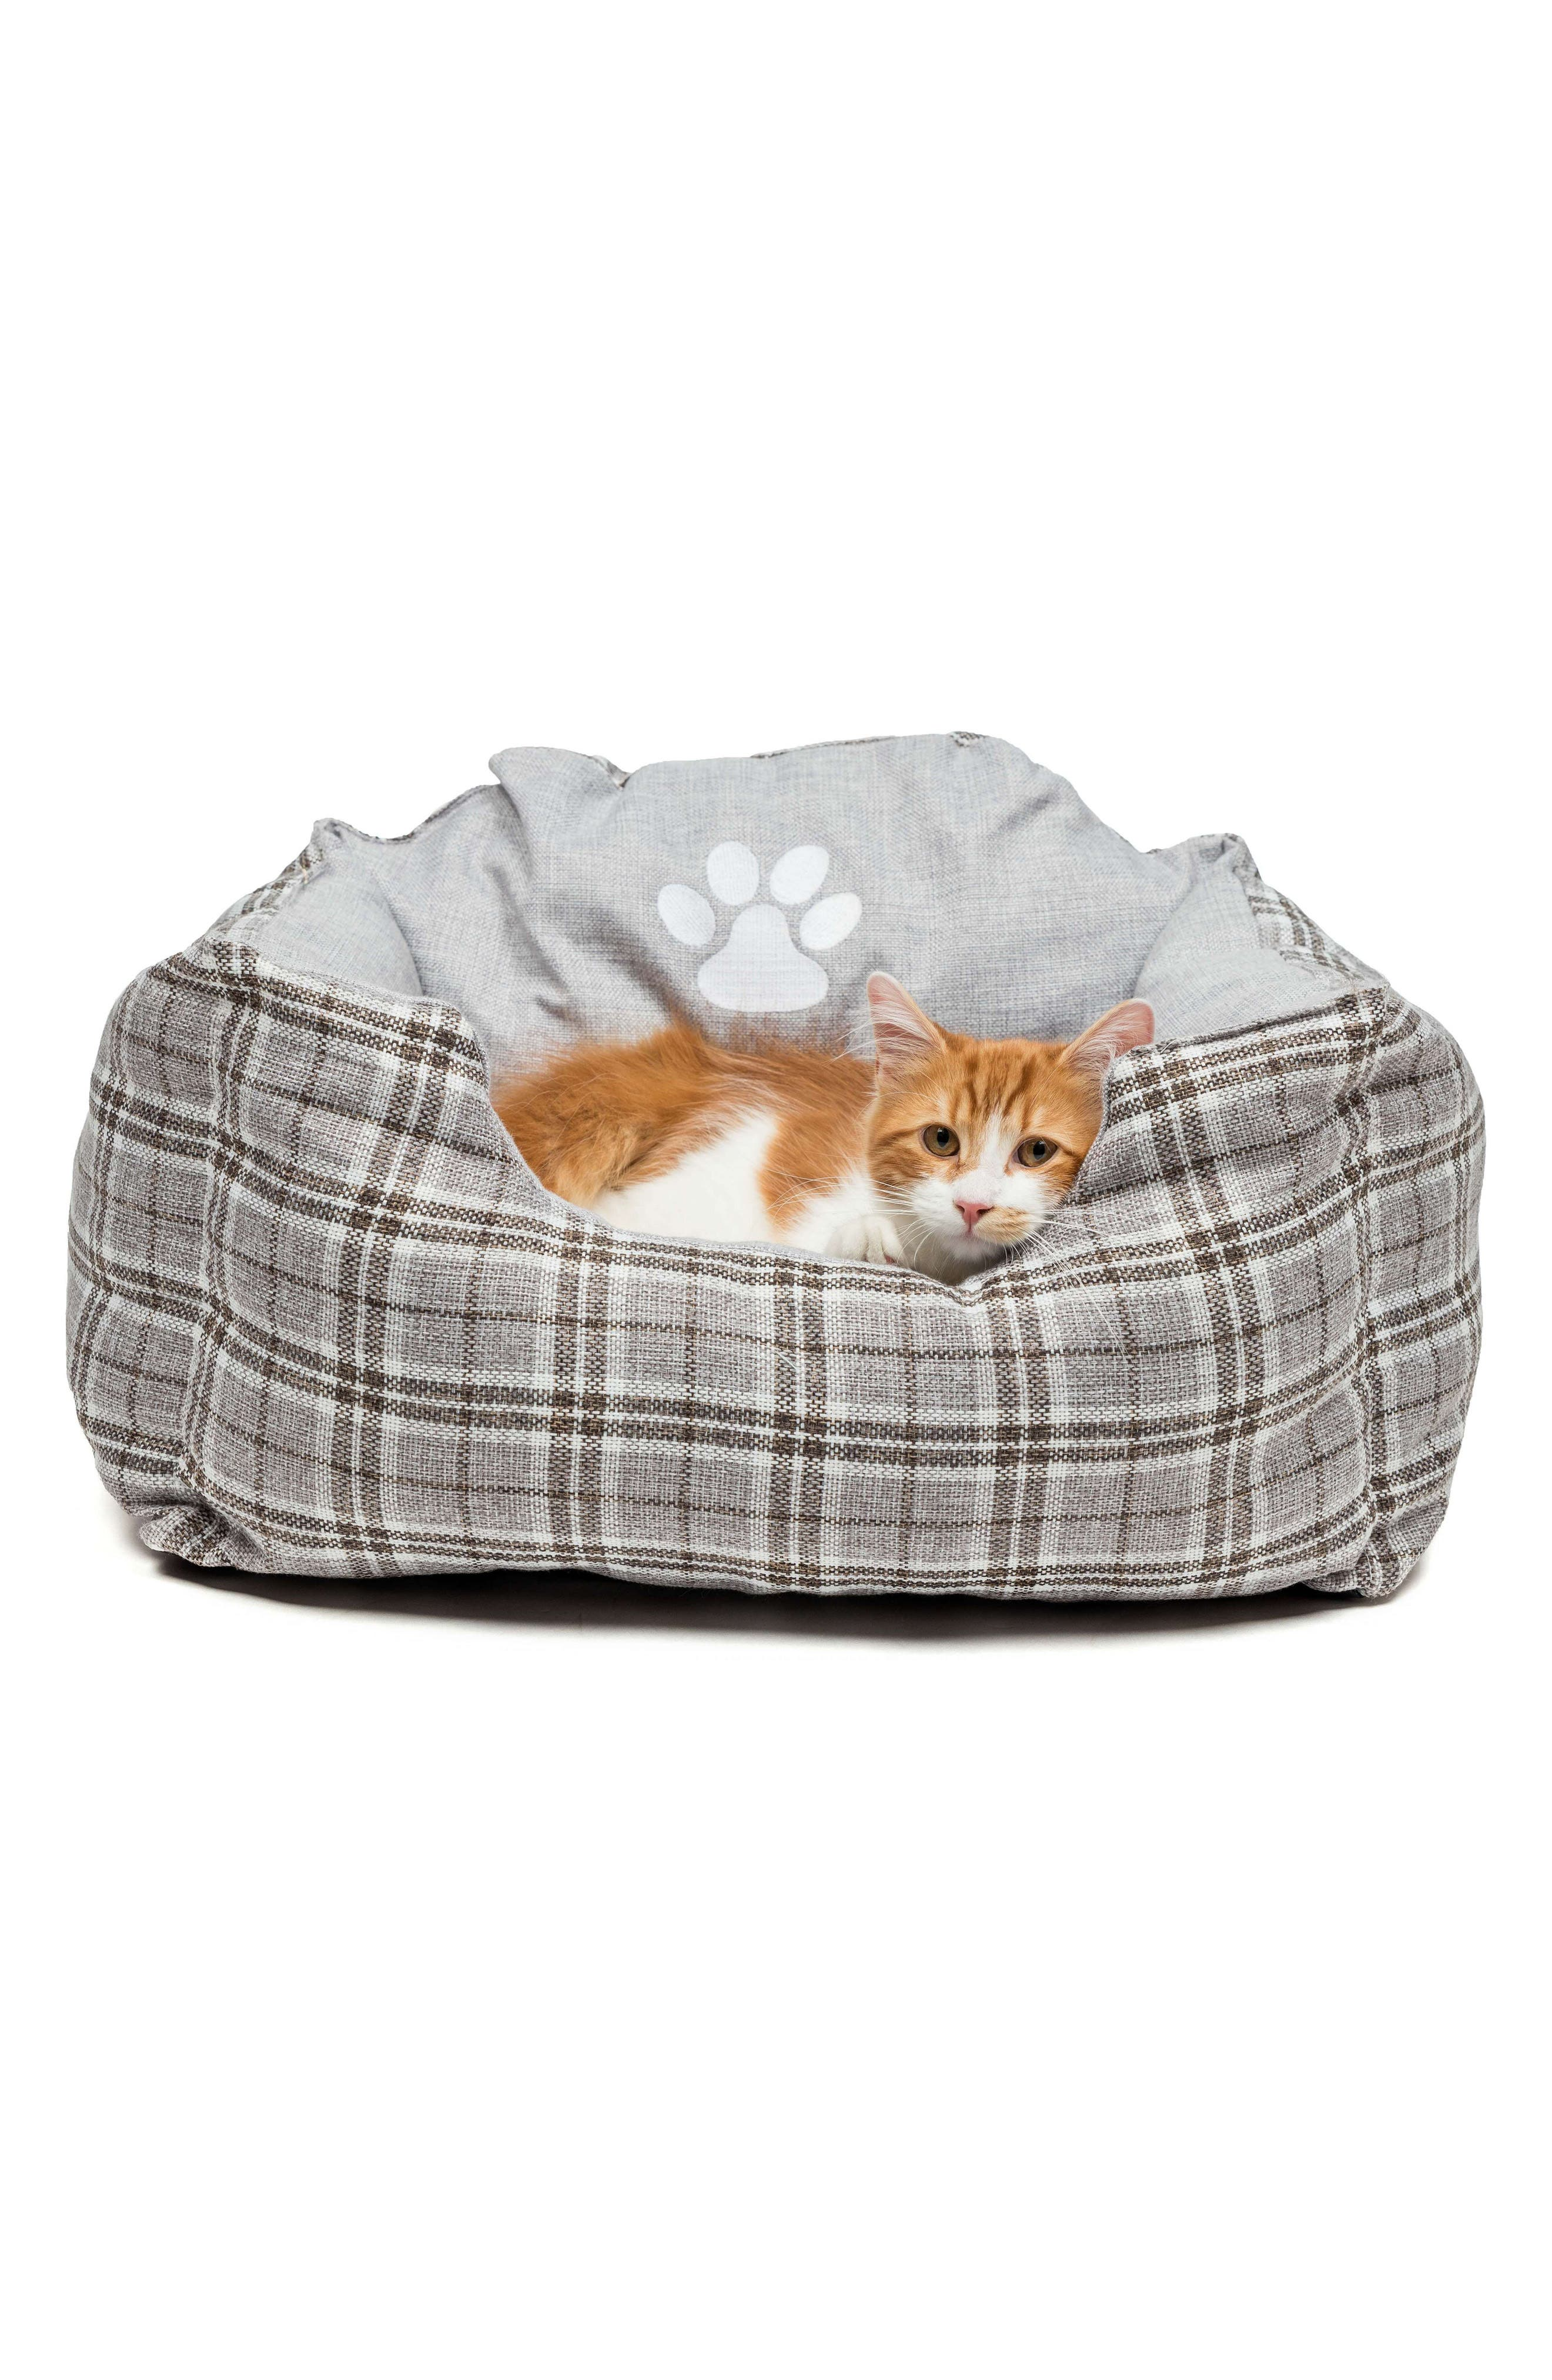 Harlee Large Square Pet Bed,                             Alternate thumbnail 3, color,                             020